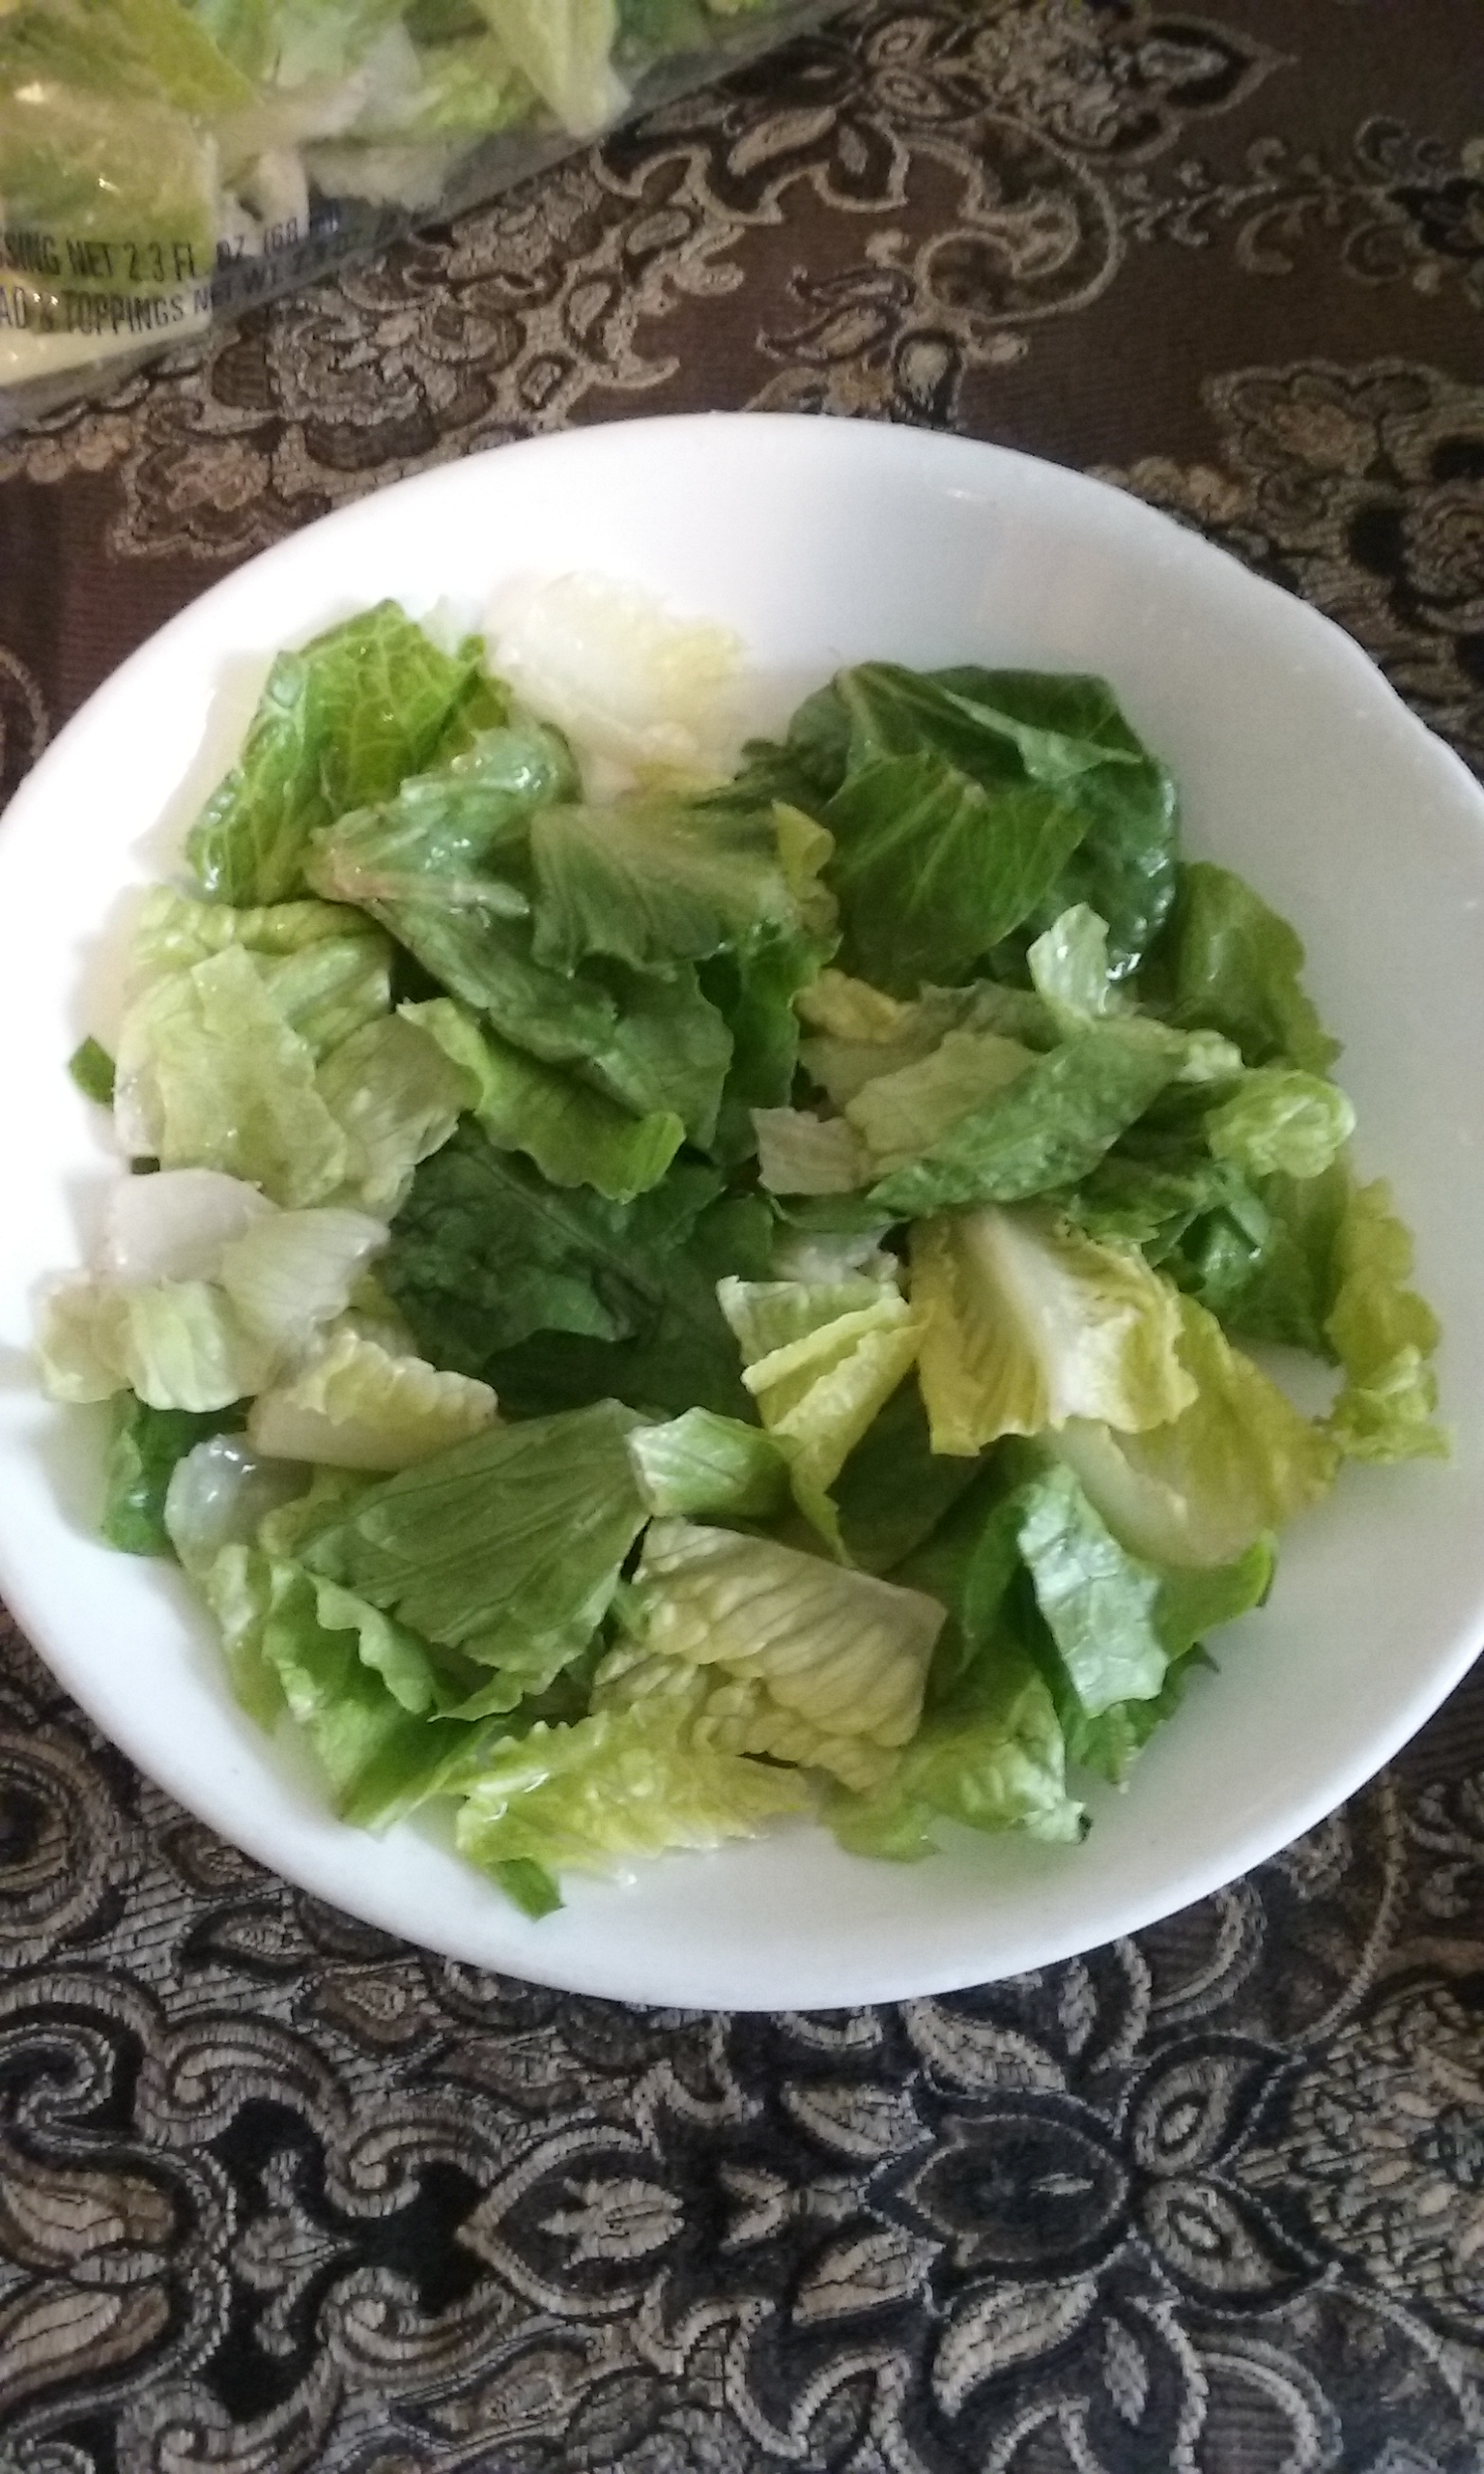 Picture of Make a Bed of Lettuce